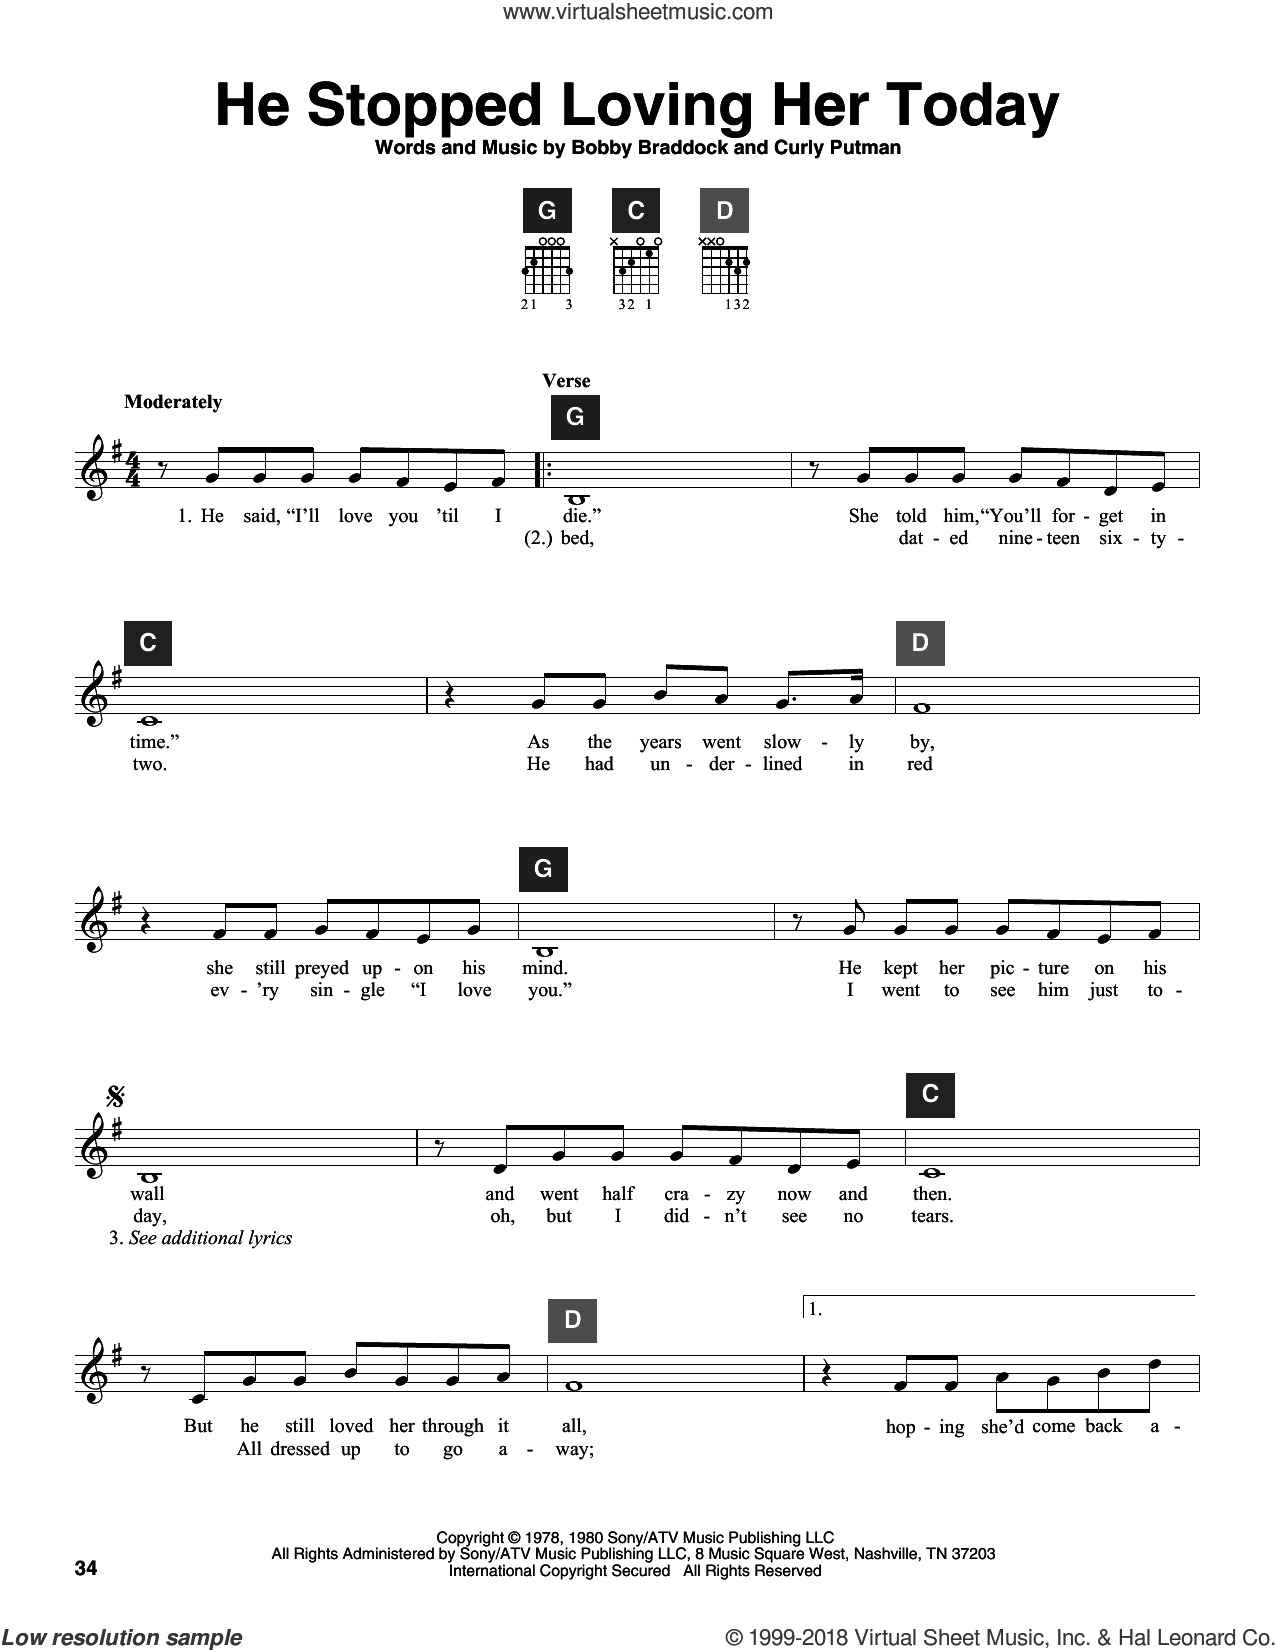 He Stopped Loving Her Today sheet music for guitar solo (ChordBuddy system) by Curly Putman, George Jones and Bobby Braddock. Score Image Preview.